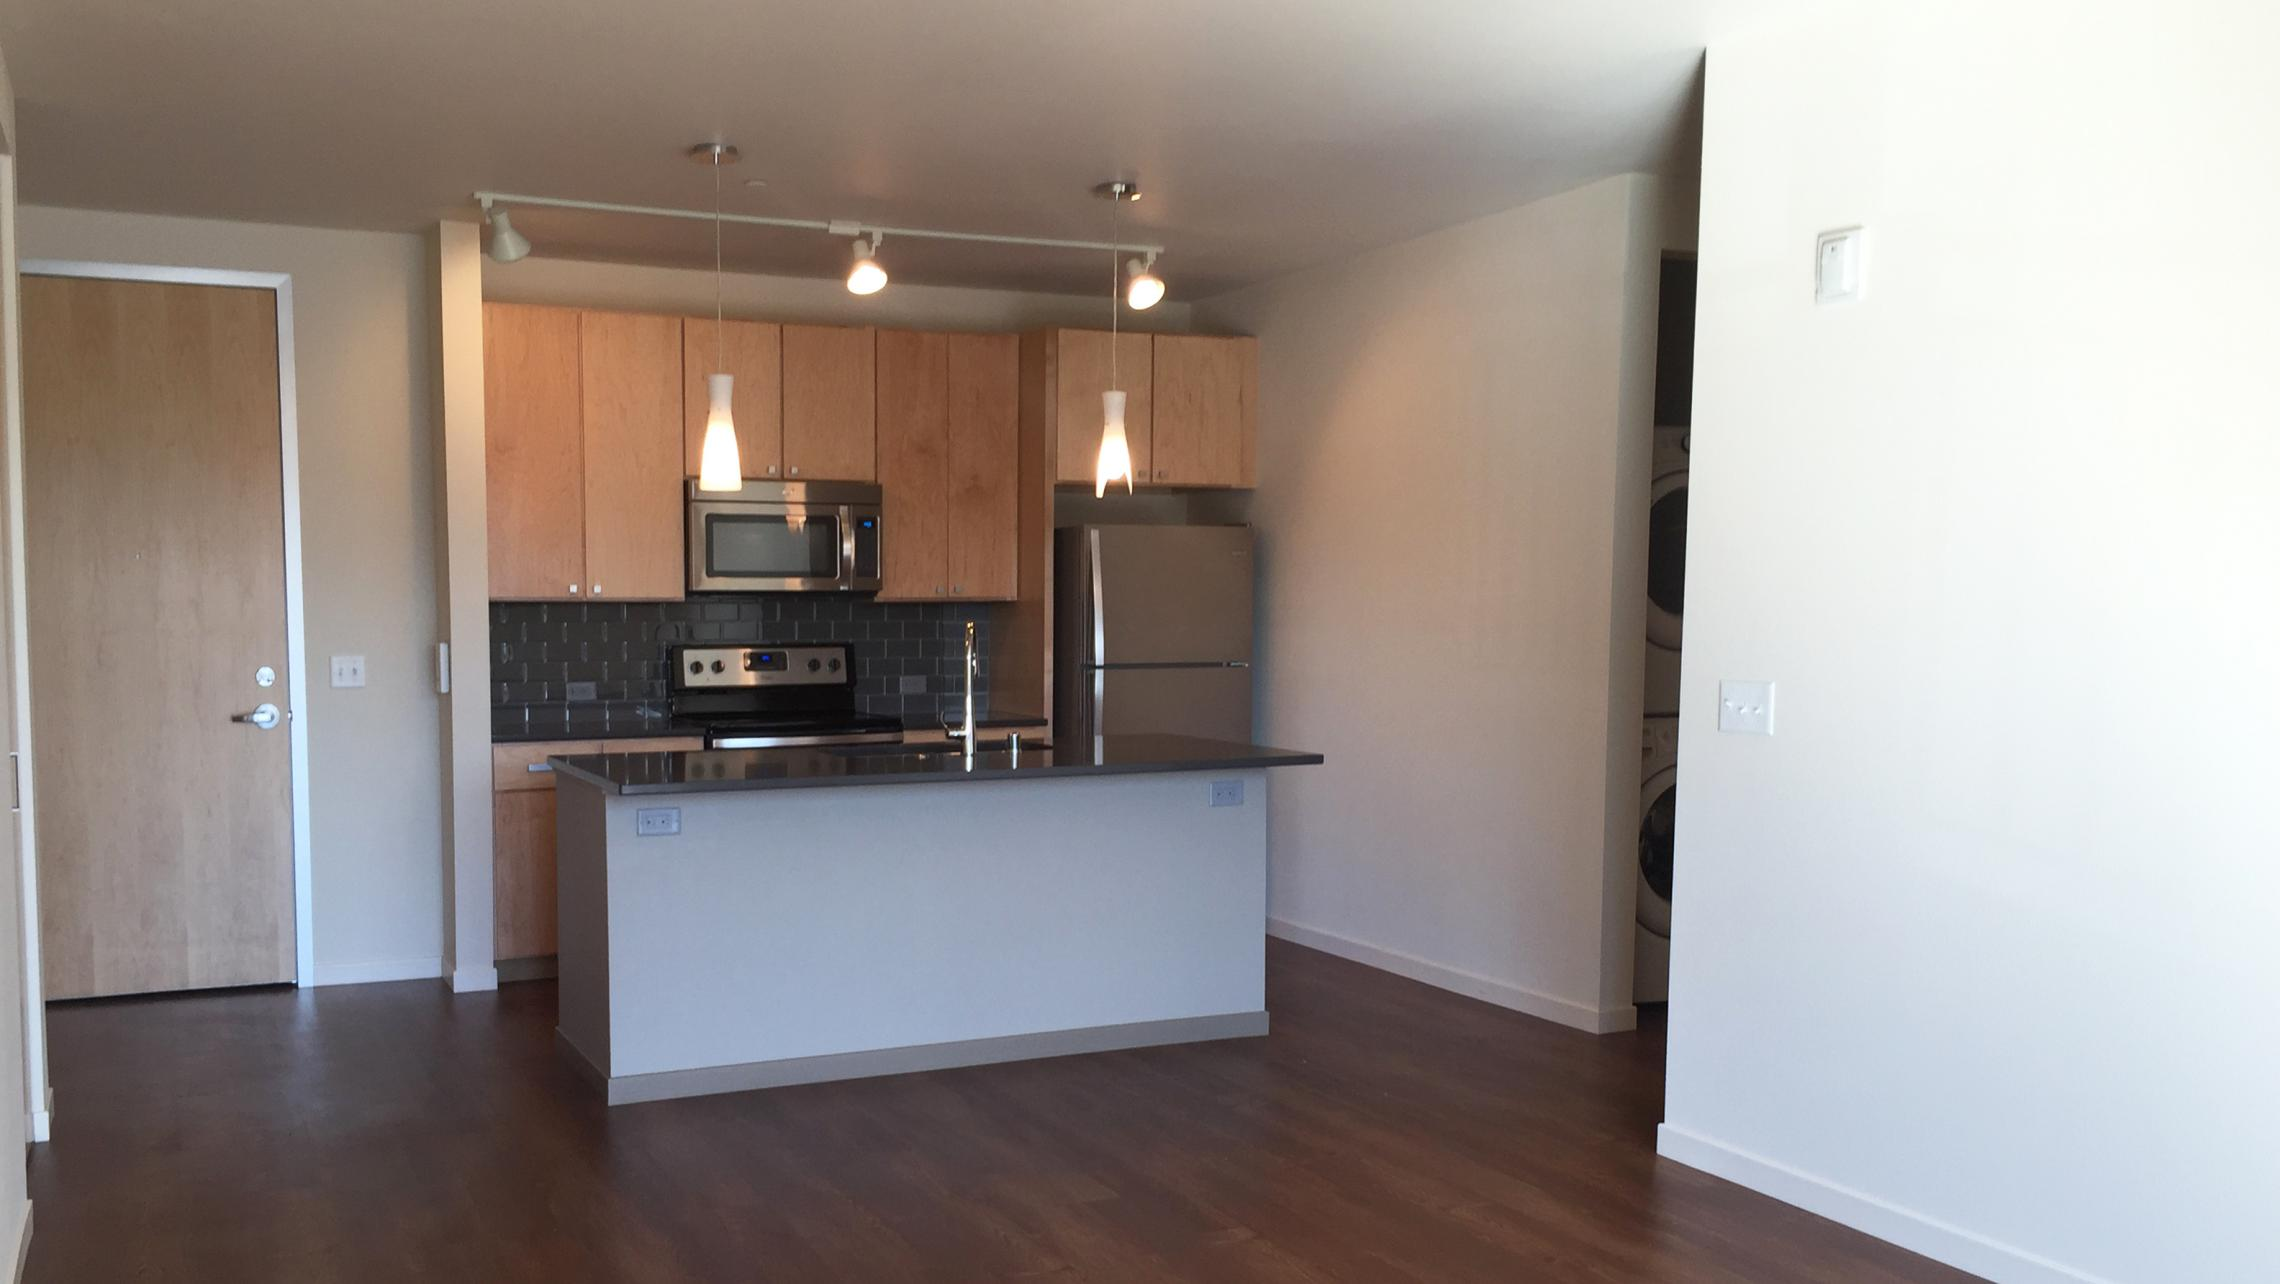 ULI Nine Line Apartment 515 - Kitchen with Stainless Steel Appliances